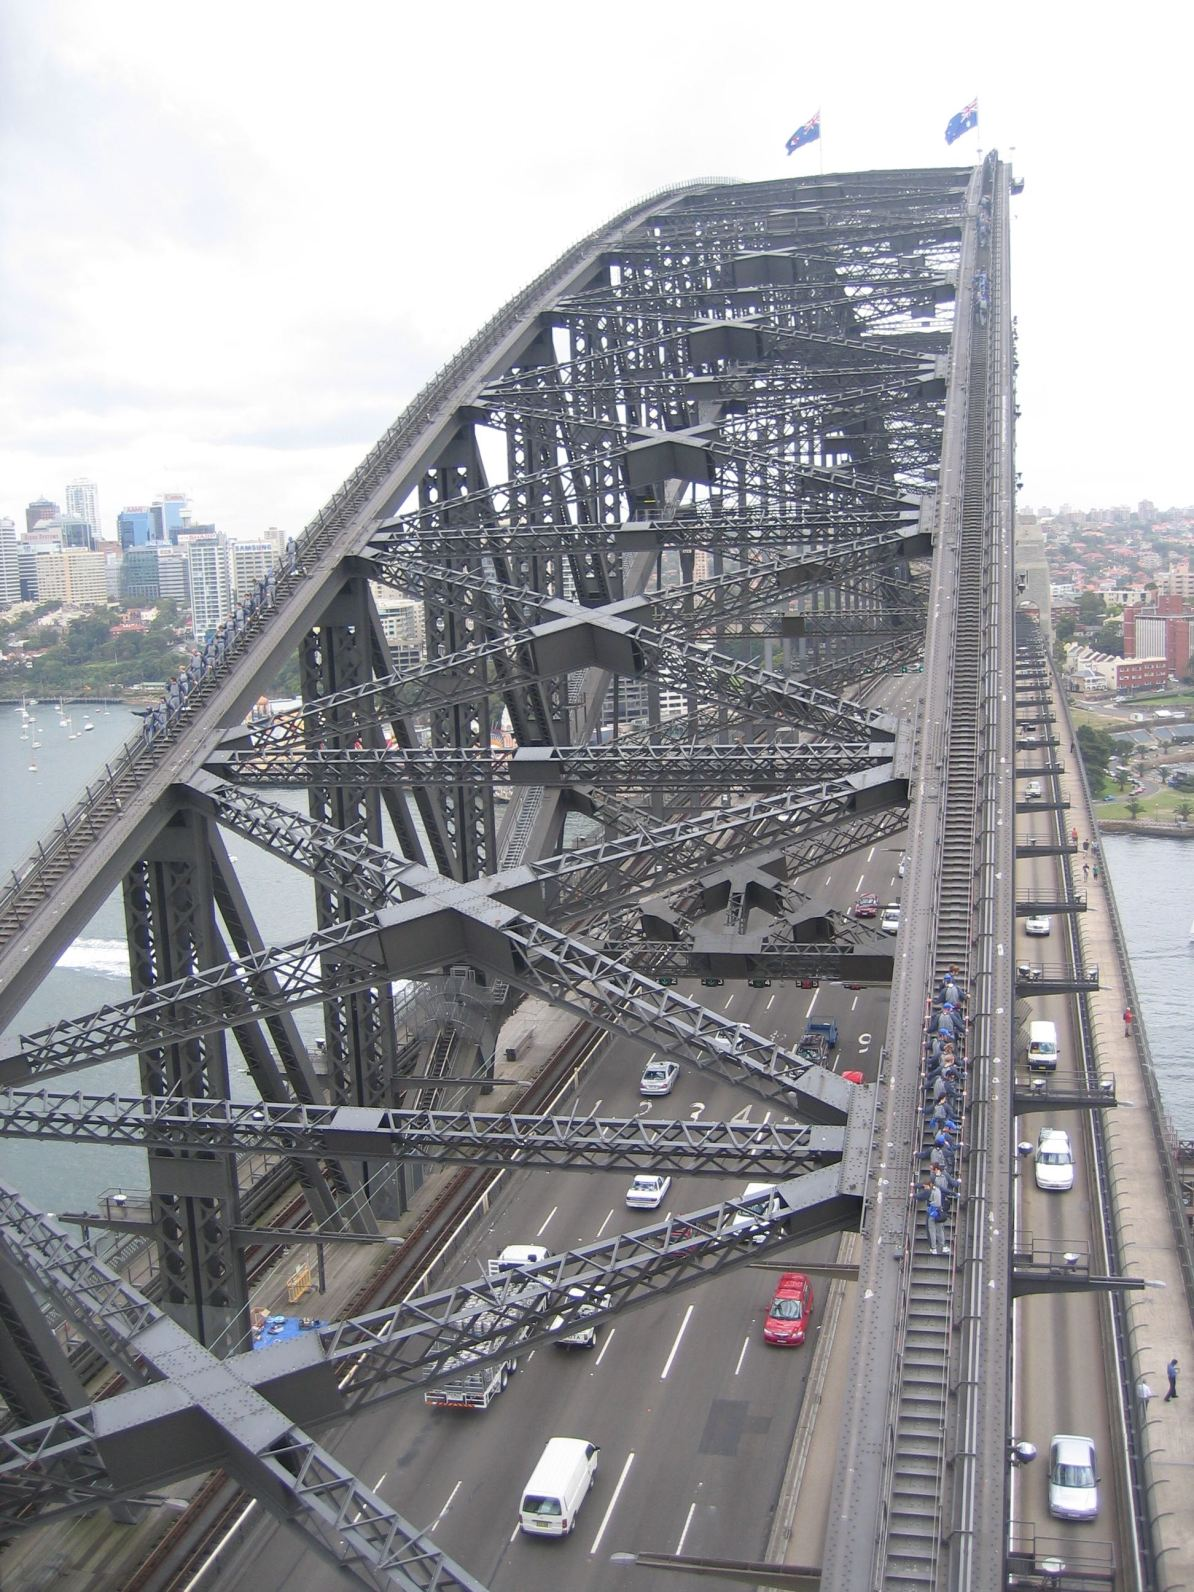 The climb to the top of the iconic Harbour Bridge.